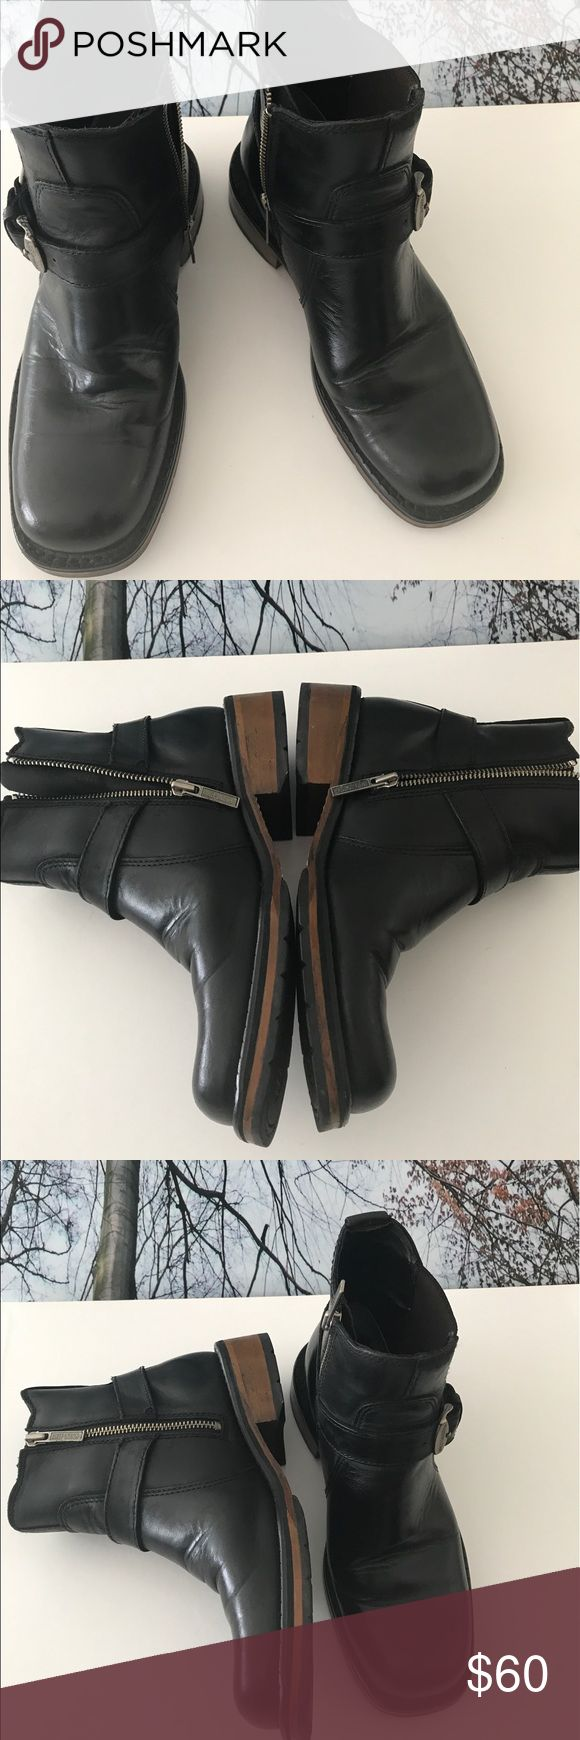 Boots Harley Davidson Boots in preowned, barely worn condition. Worn twice only. Harley Davidson Shoes Combat & Moto Boots